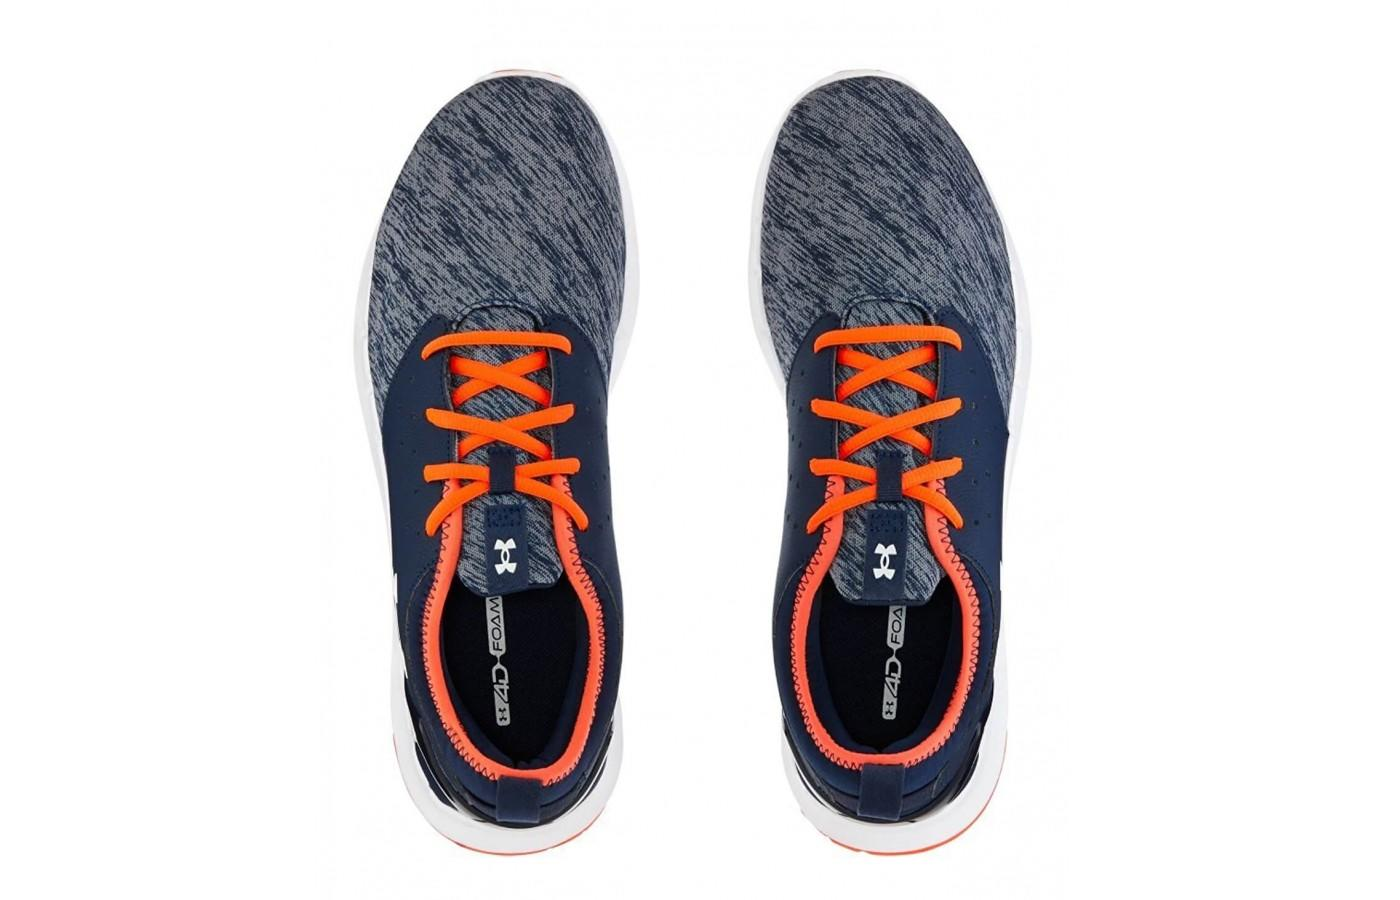 a pair of Under Armour Flow Twist trainers